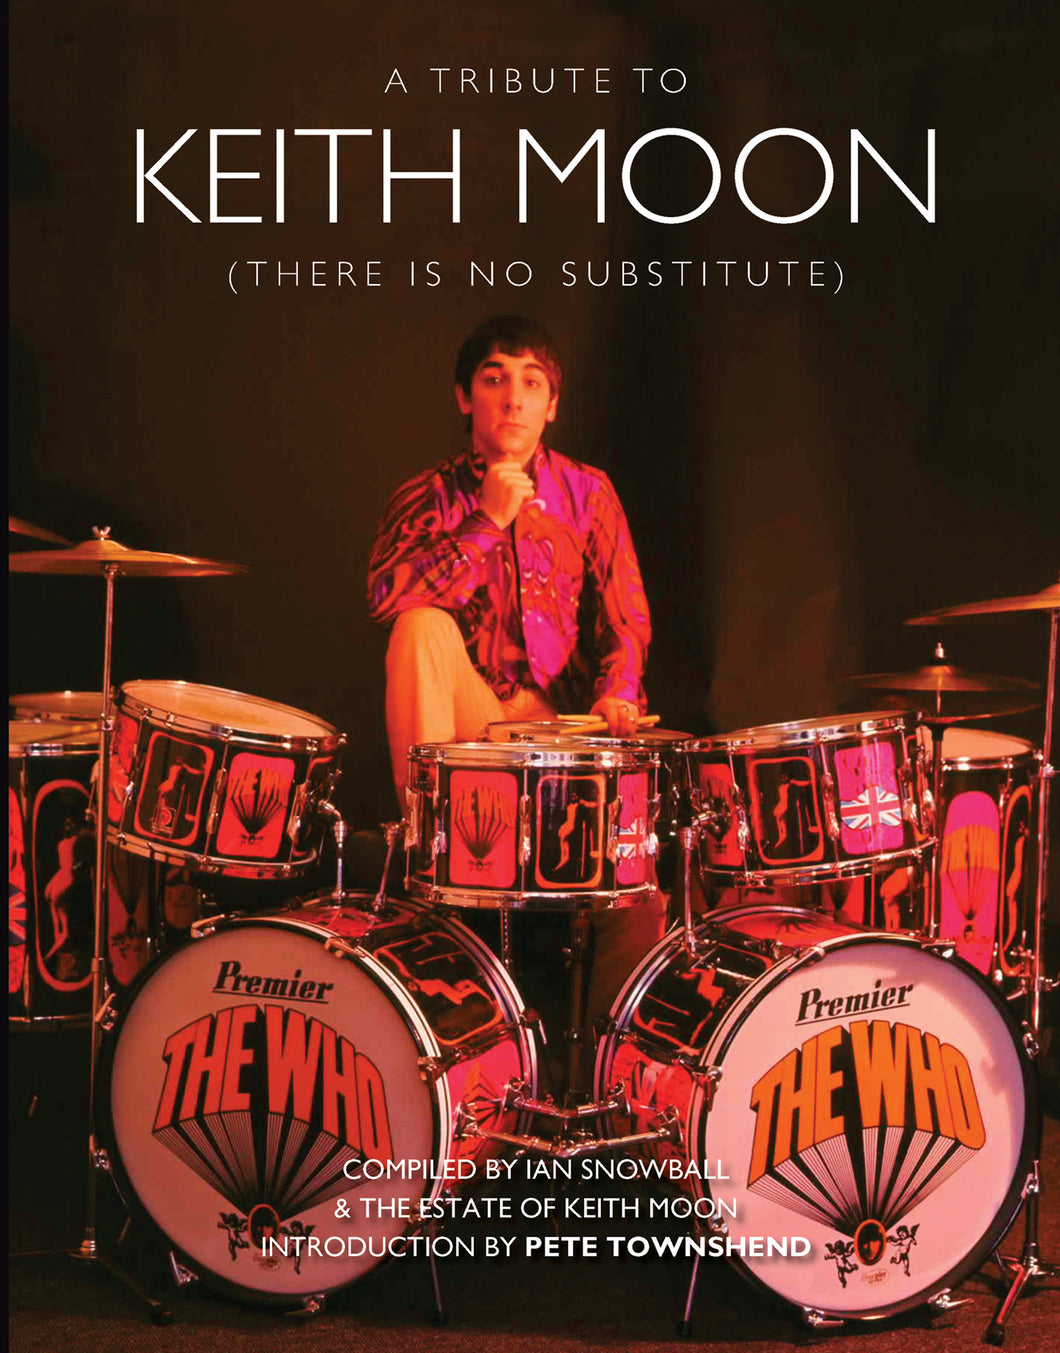 Keith Moon: There is no Substitute